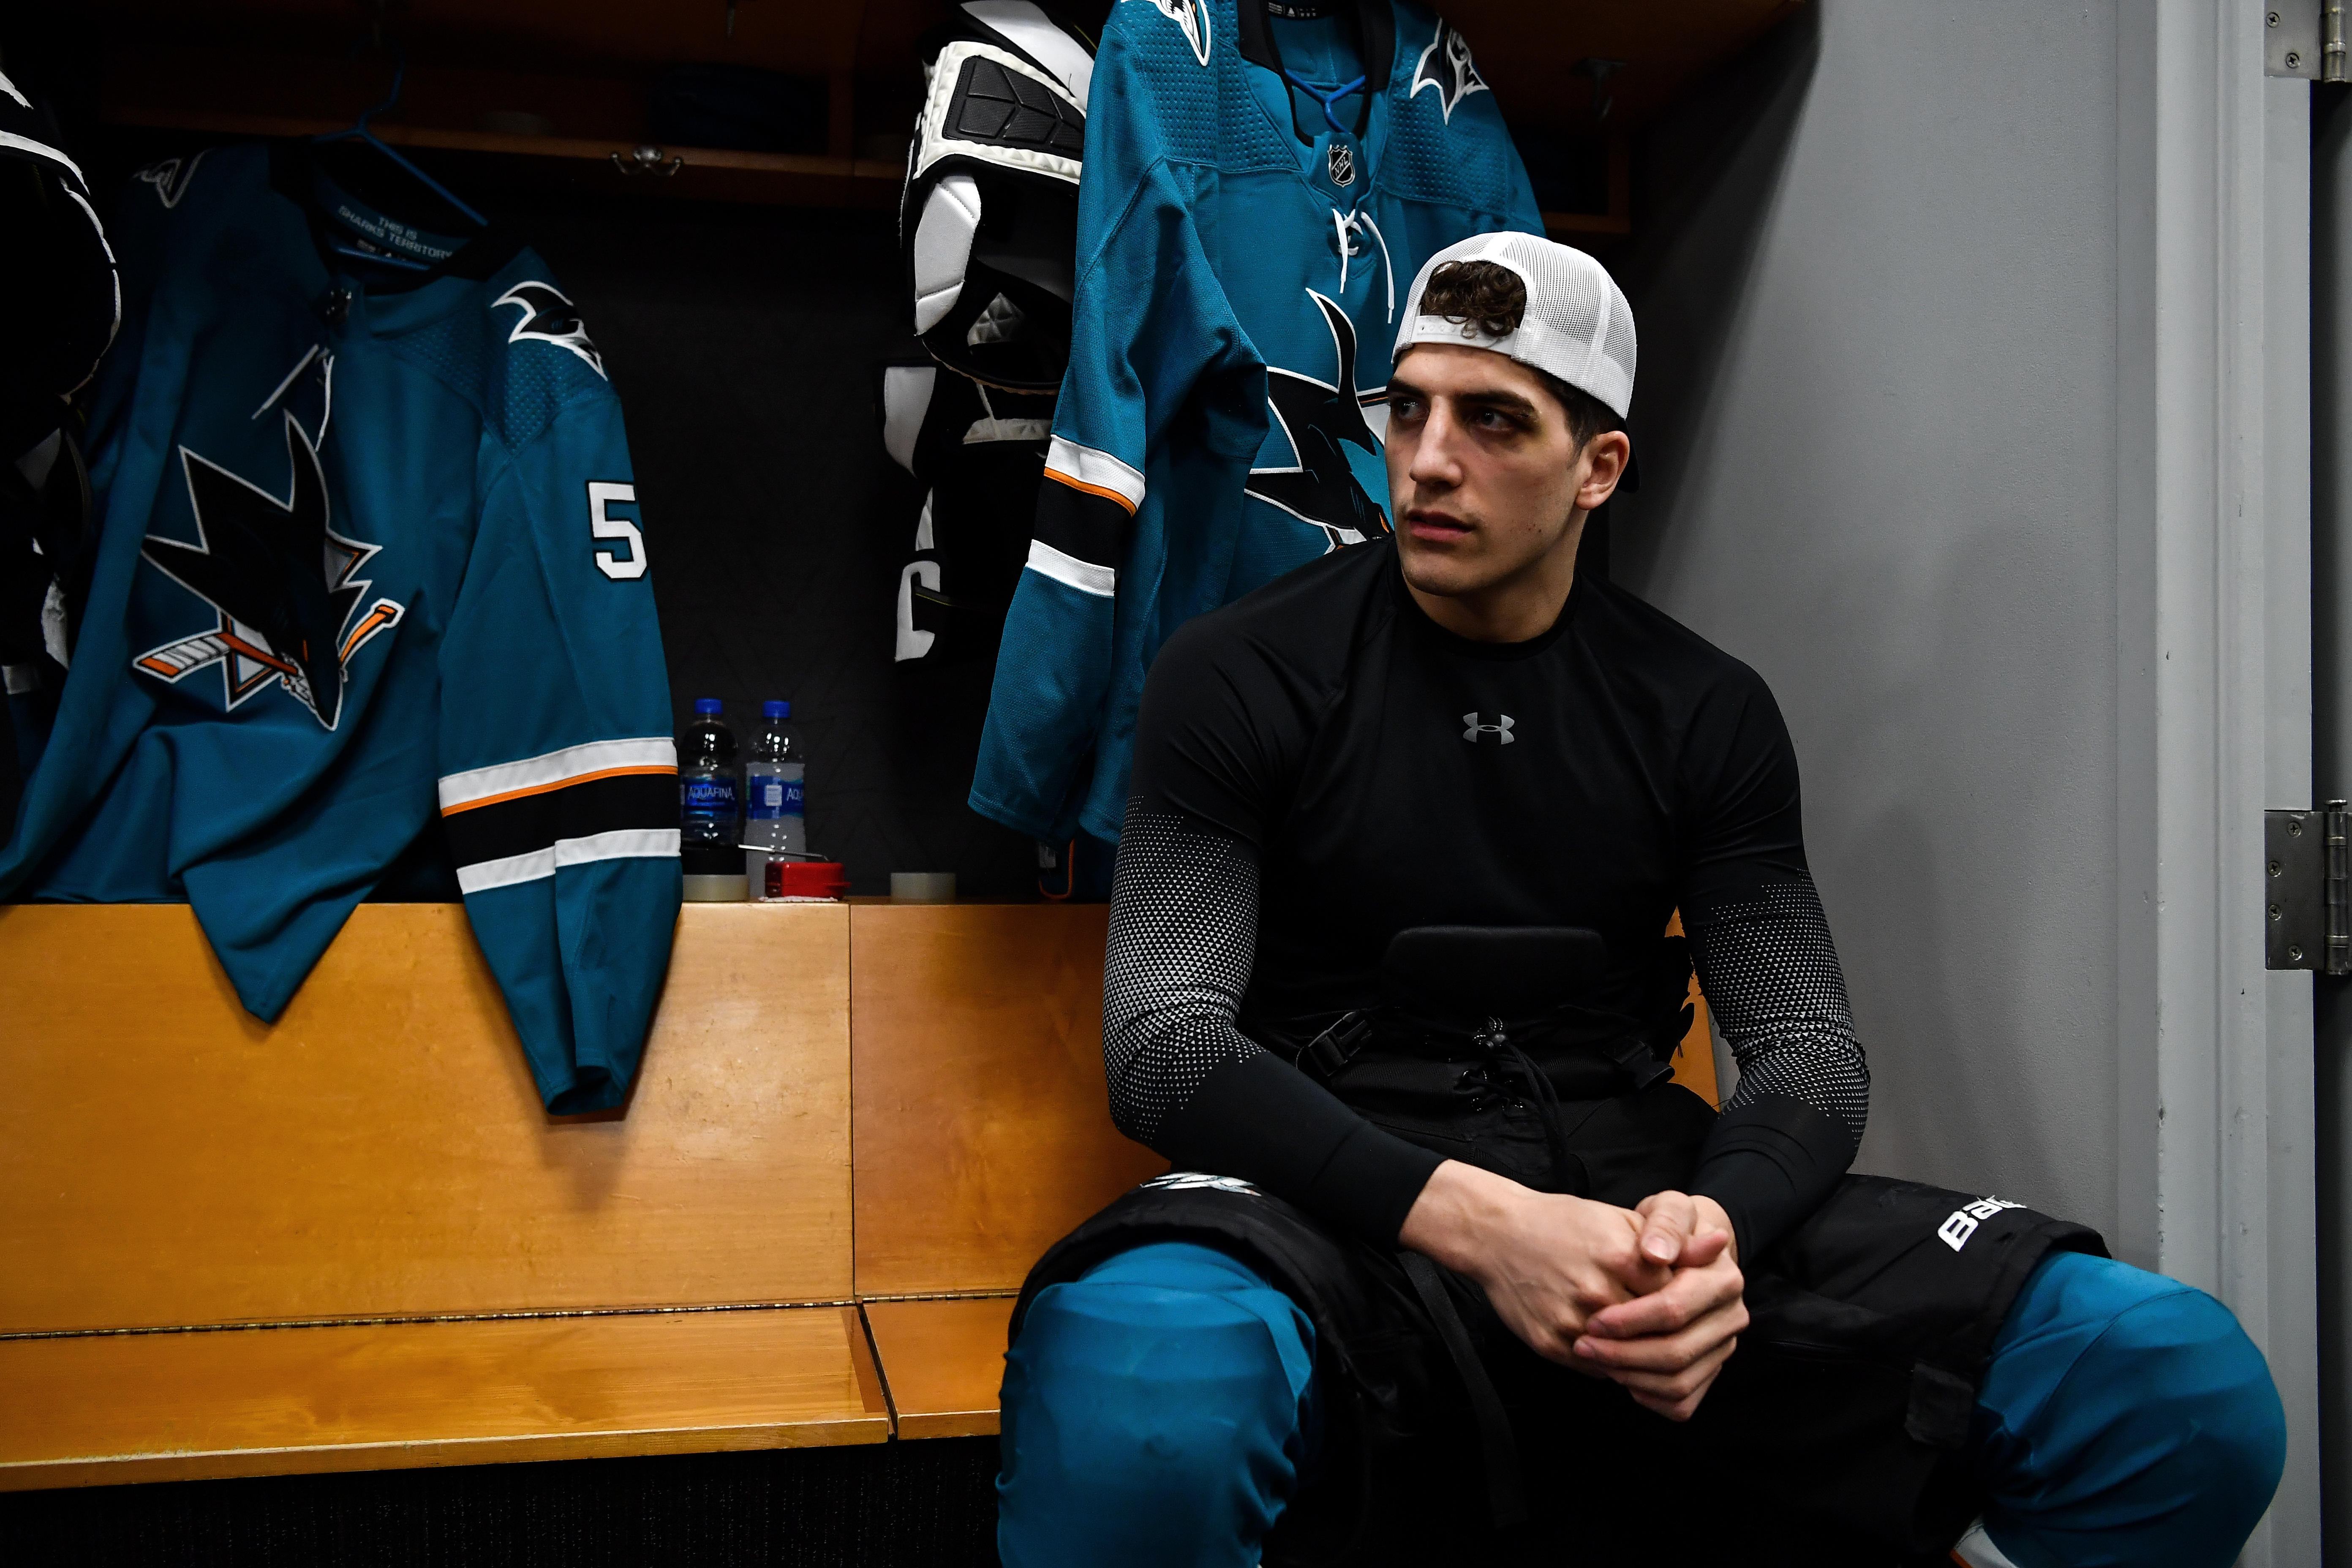 Mario Ferraro #38 of the San Jose Sharks prepares to take the ice for warmups against the Calgary Flames at SAP Center on February 10, 2020 in San Jose, California.